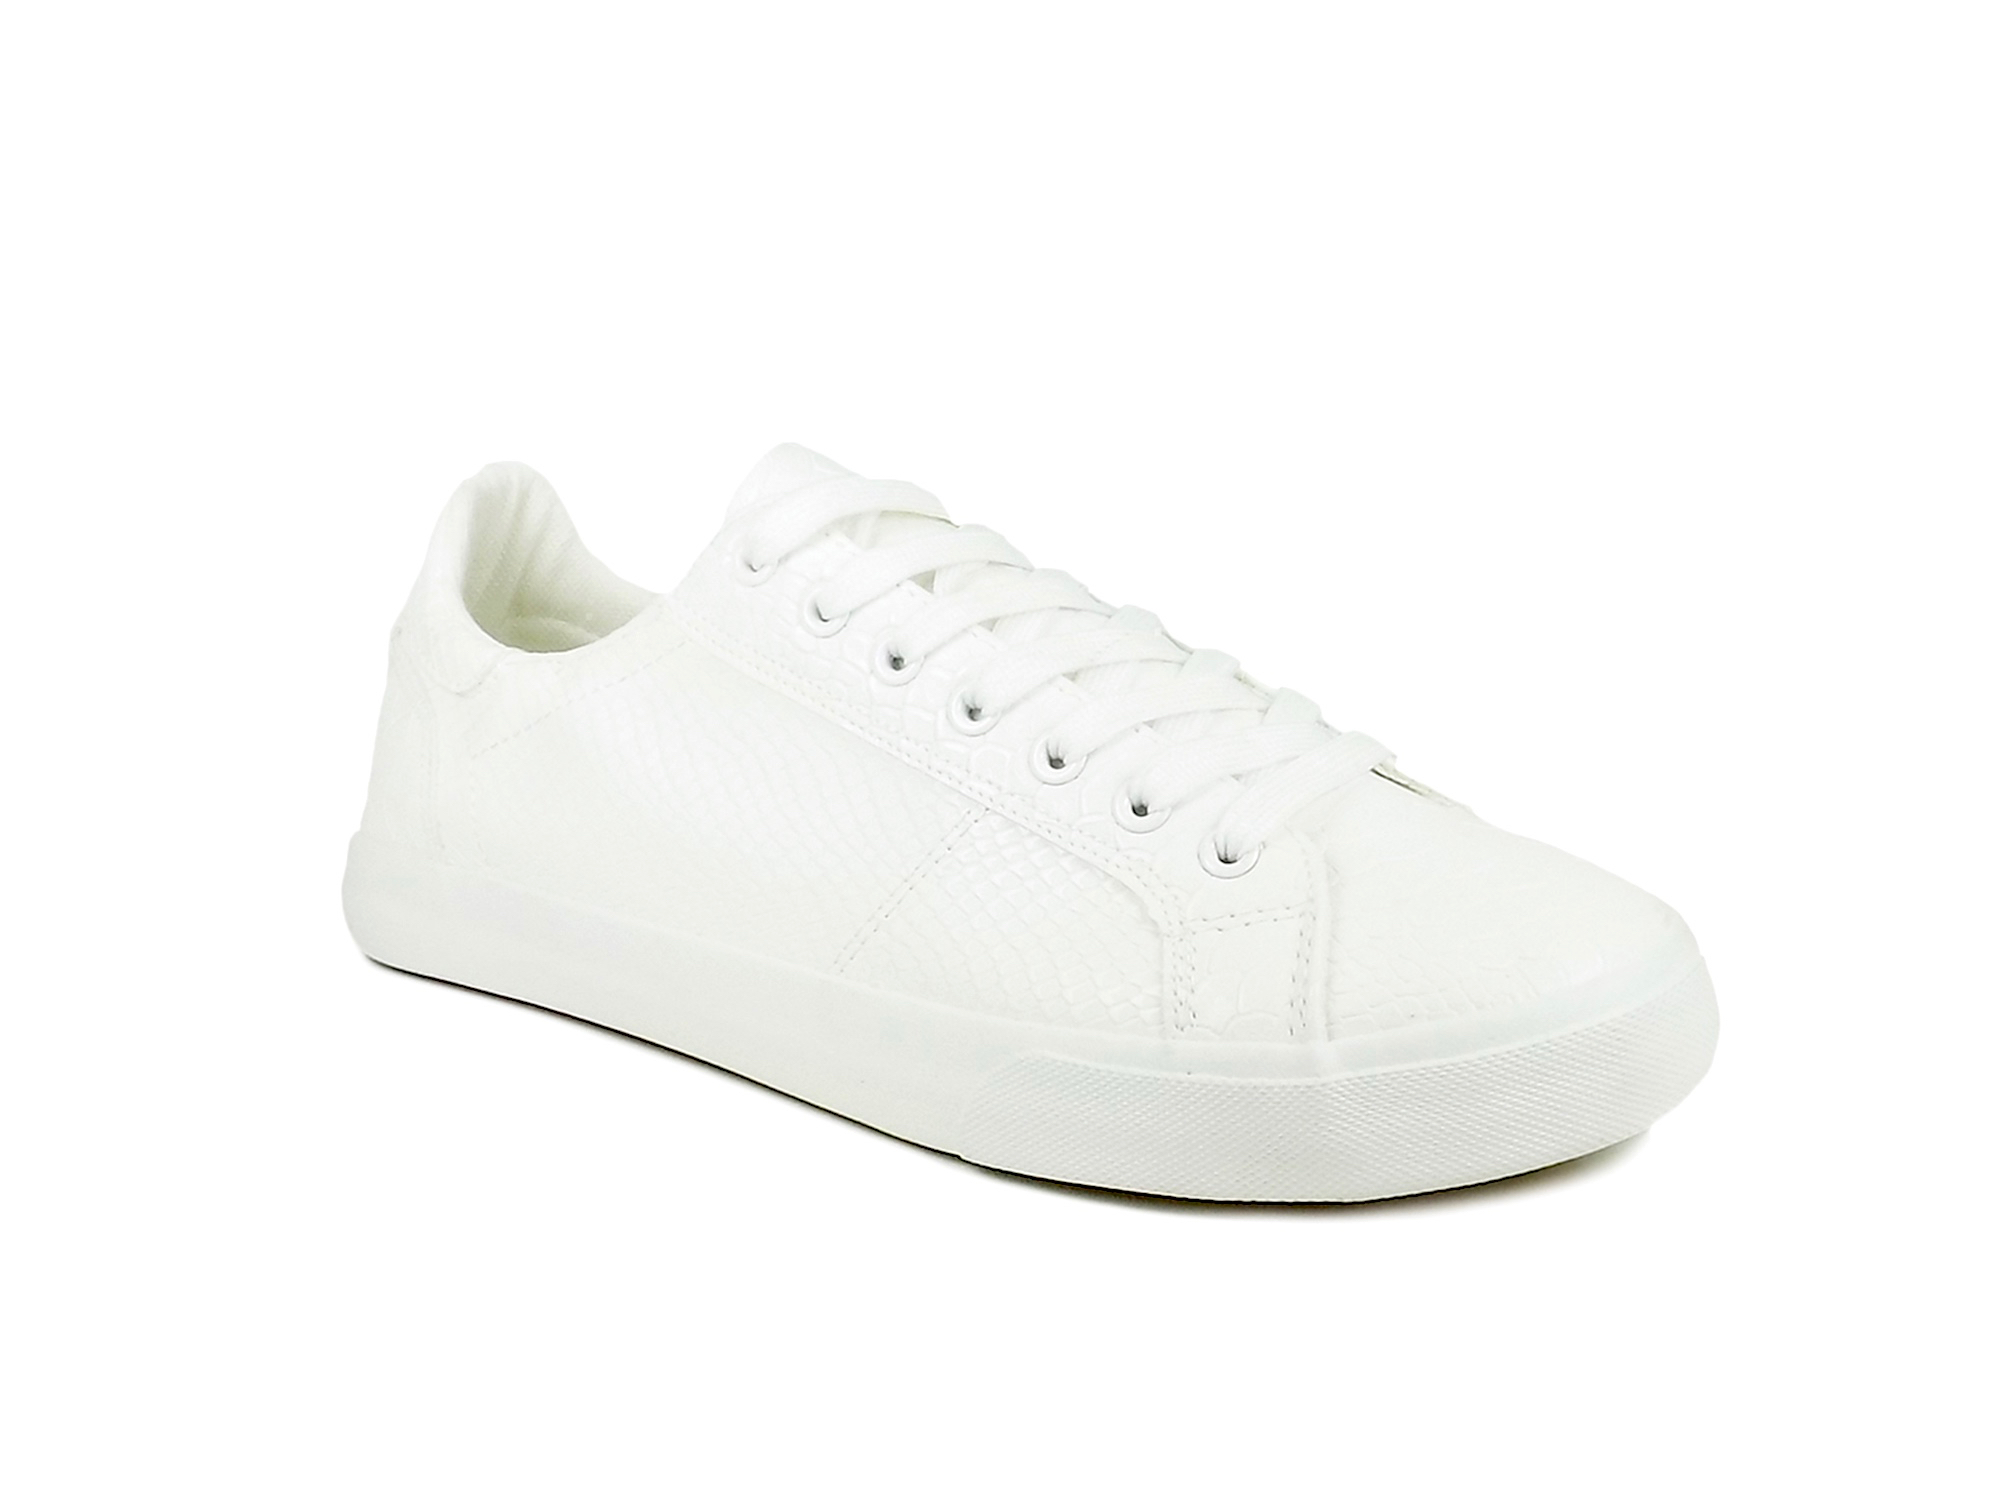 vantagesales Ripley Neo Series White Textured Leatherette Casual Shoes